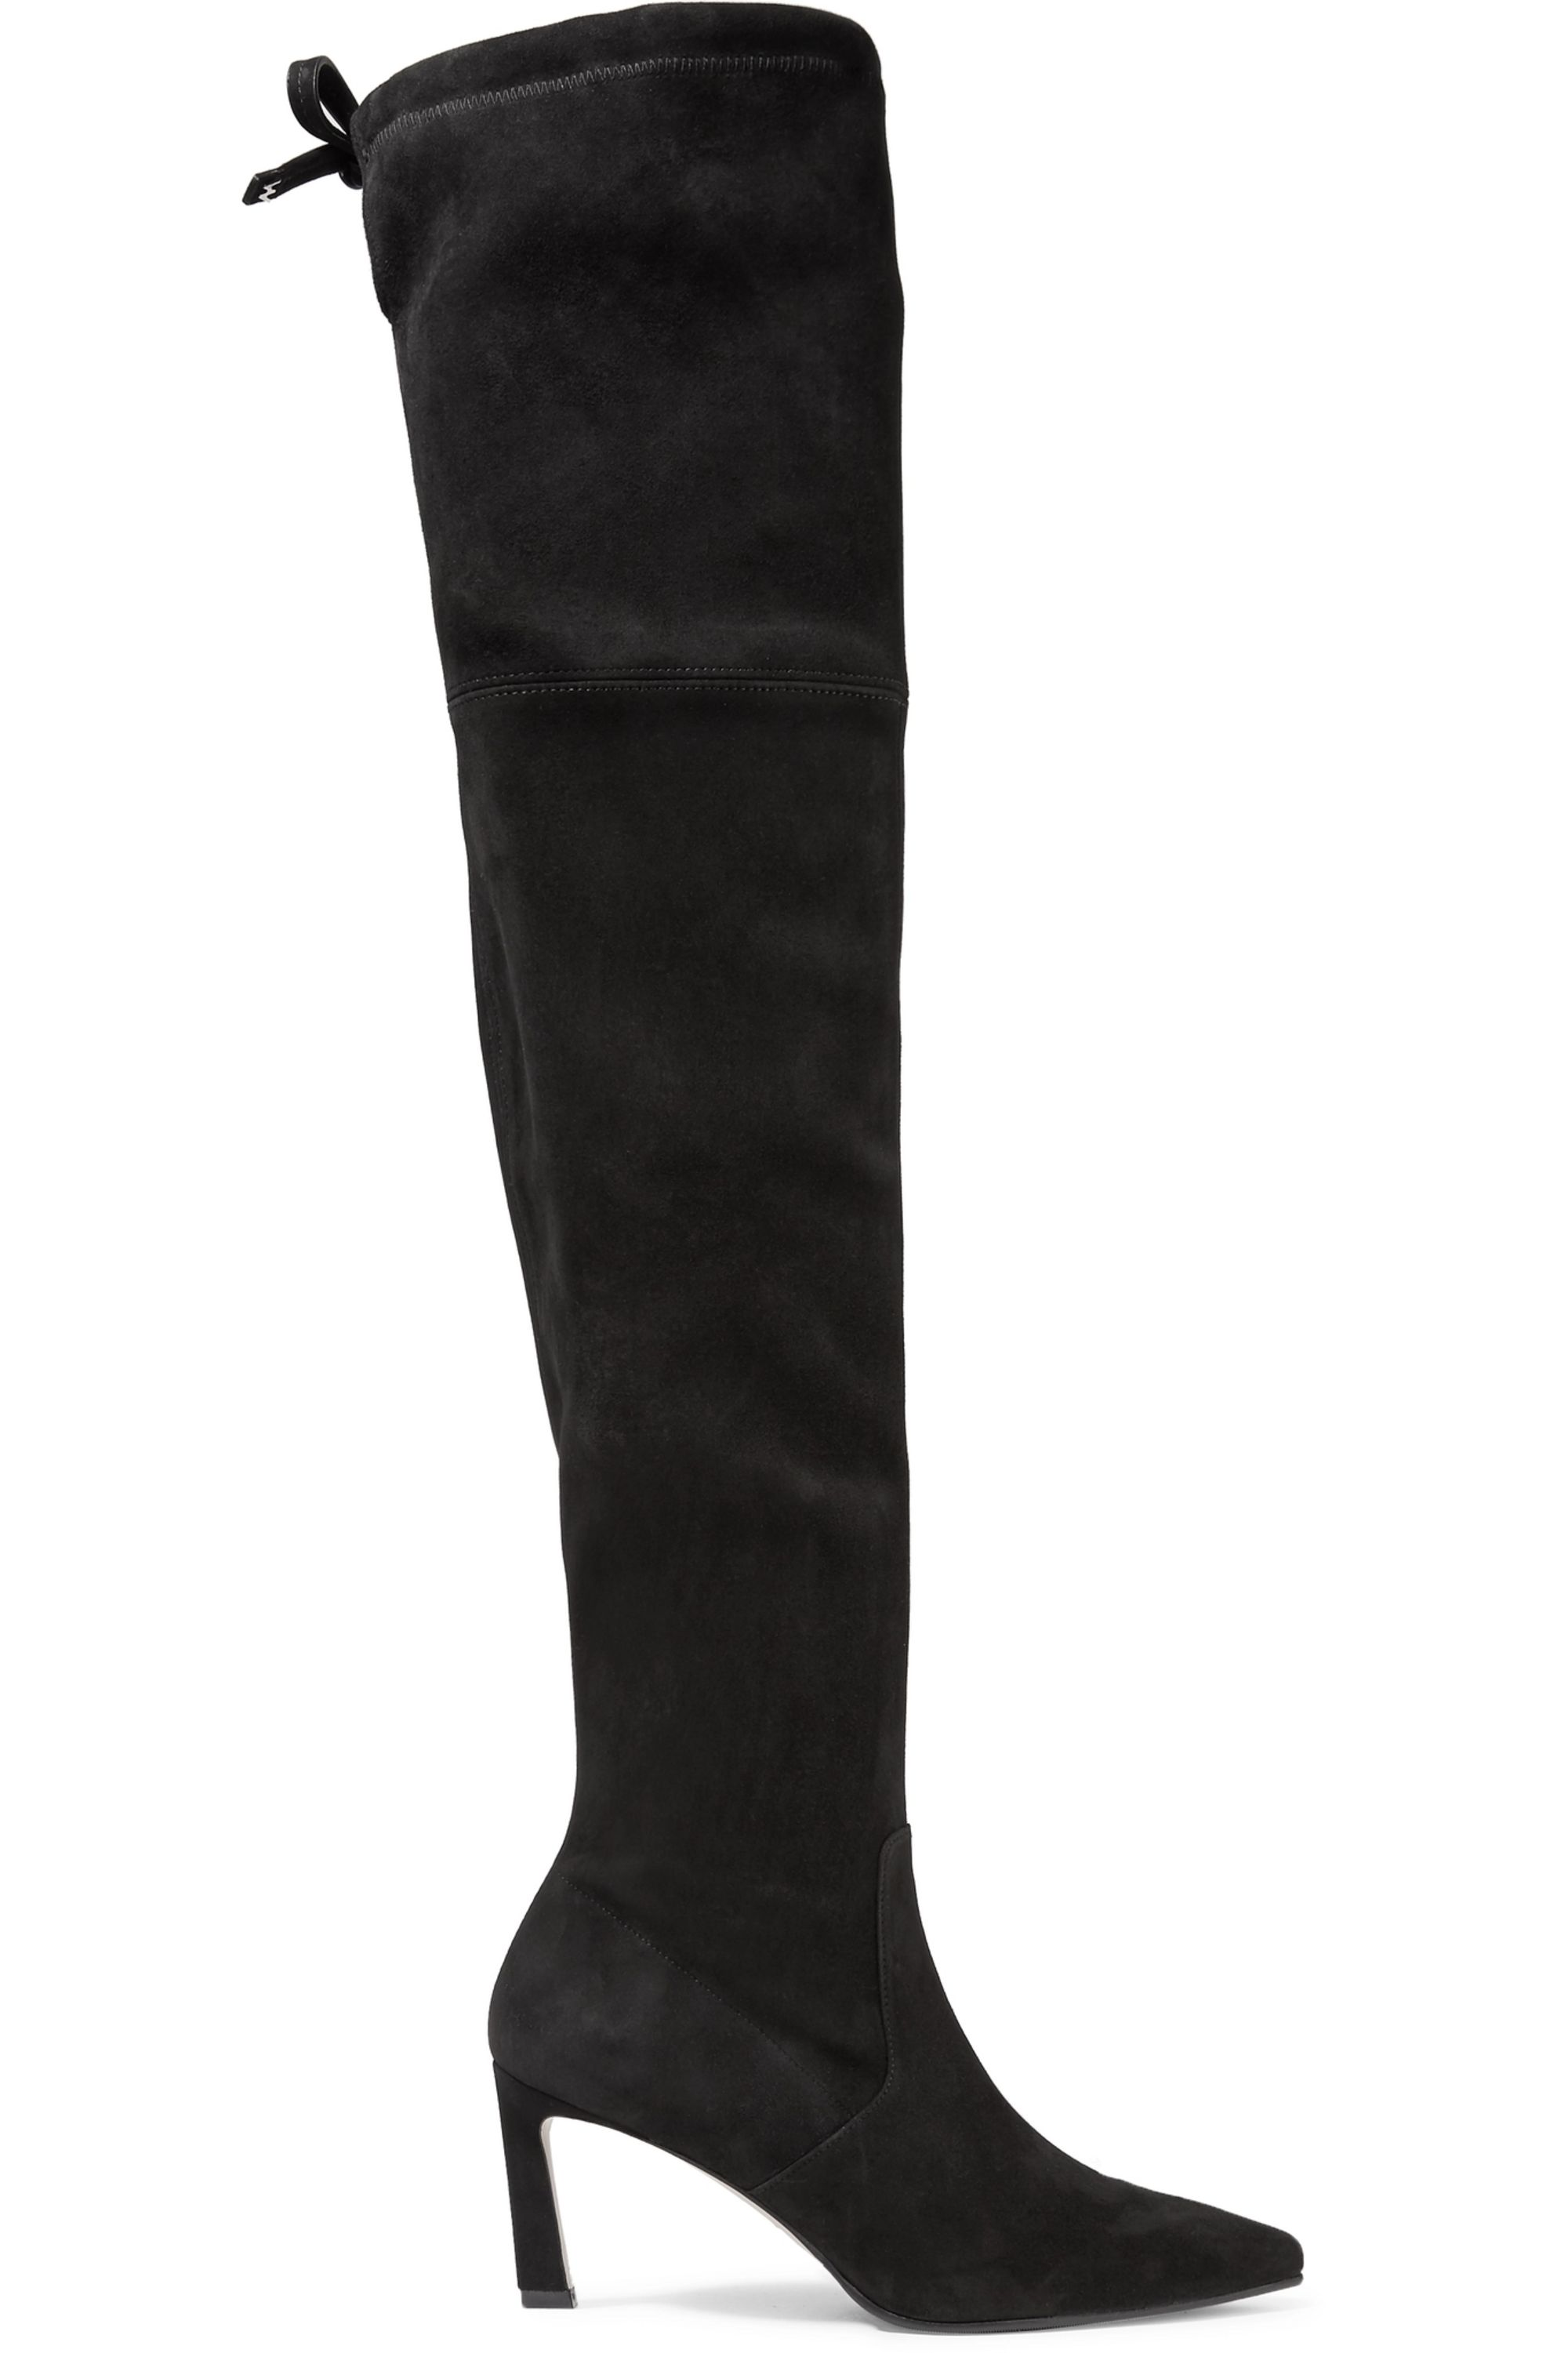 Black Natalia suede over-the-knee boots